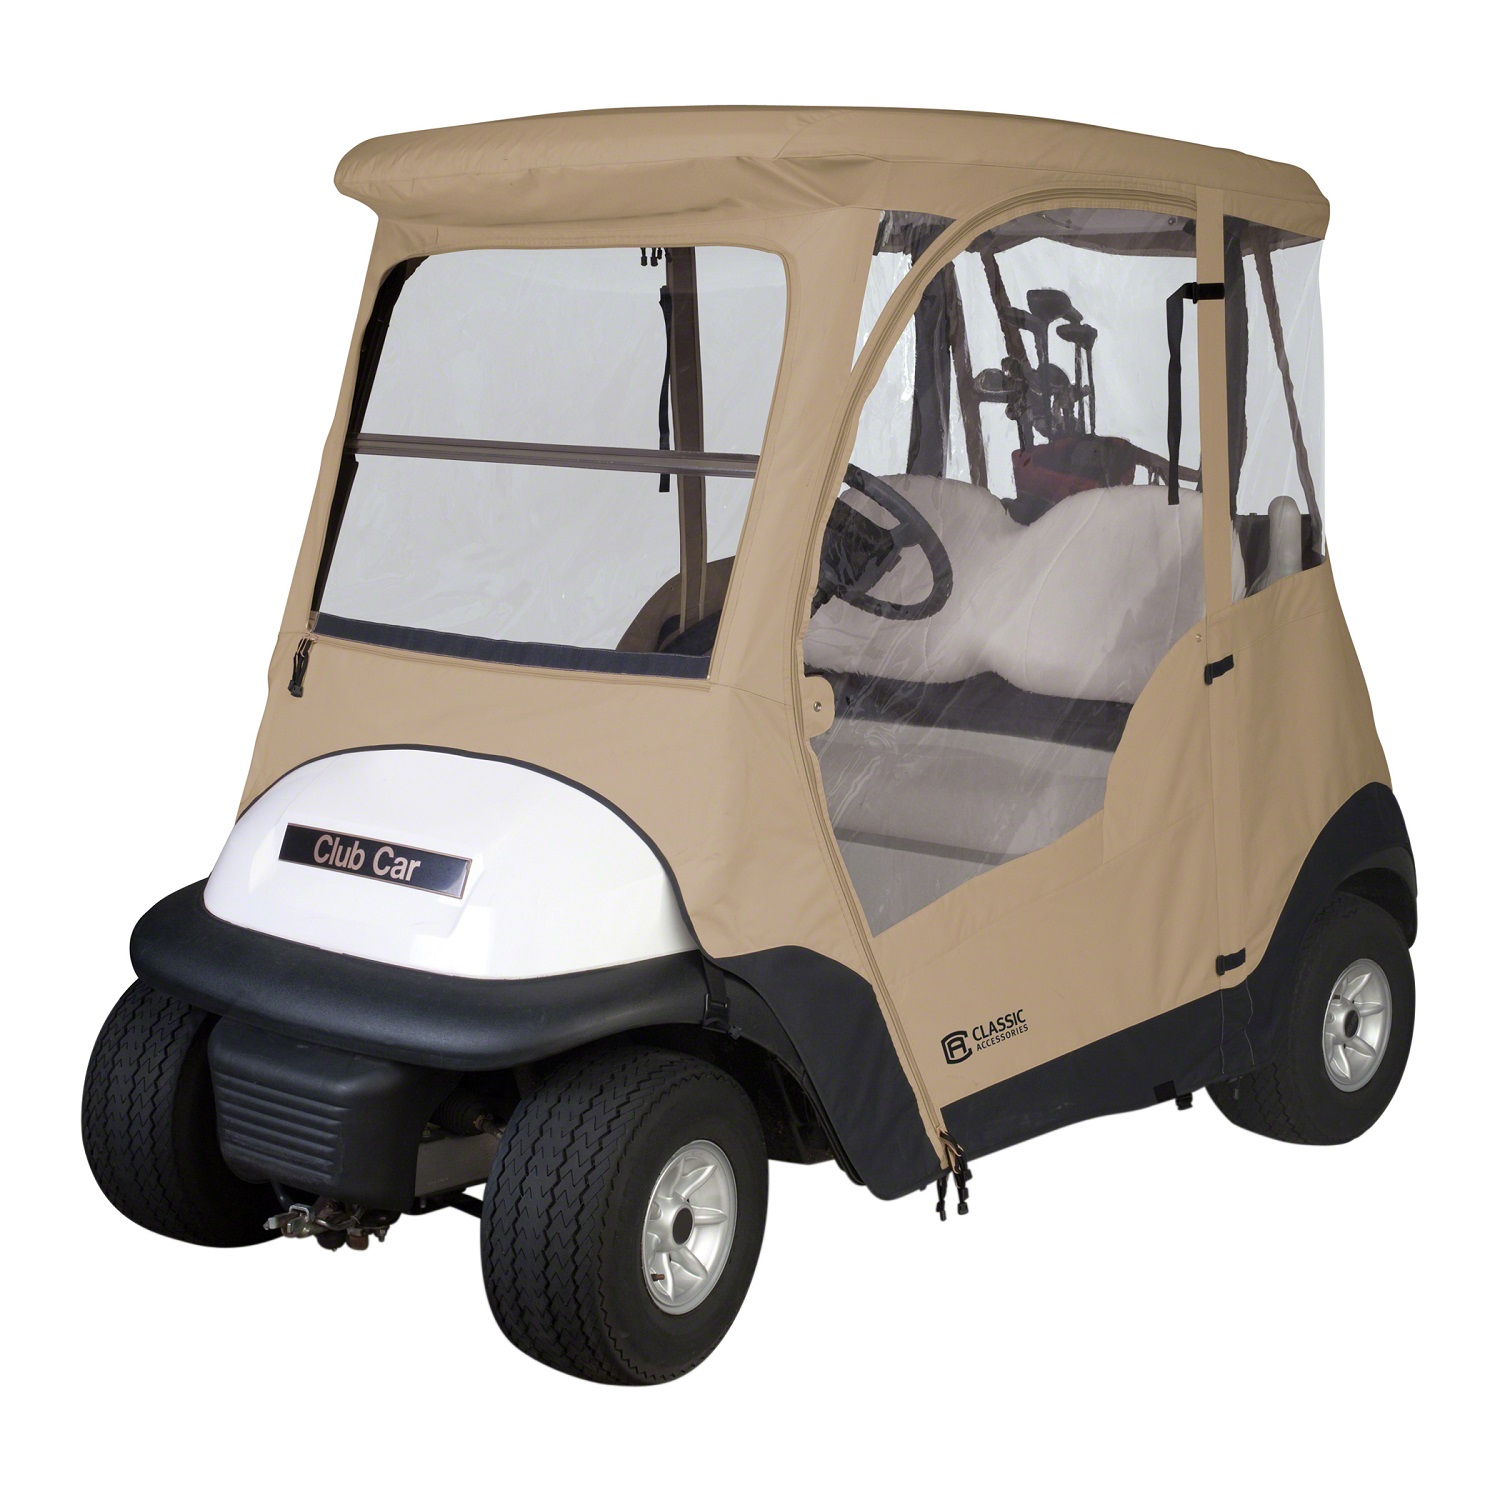 Classic Fairway Club Car Precedent Enclosure - Sand